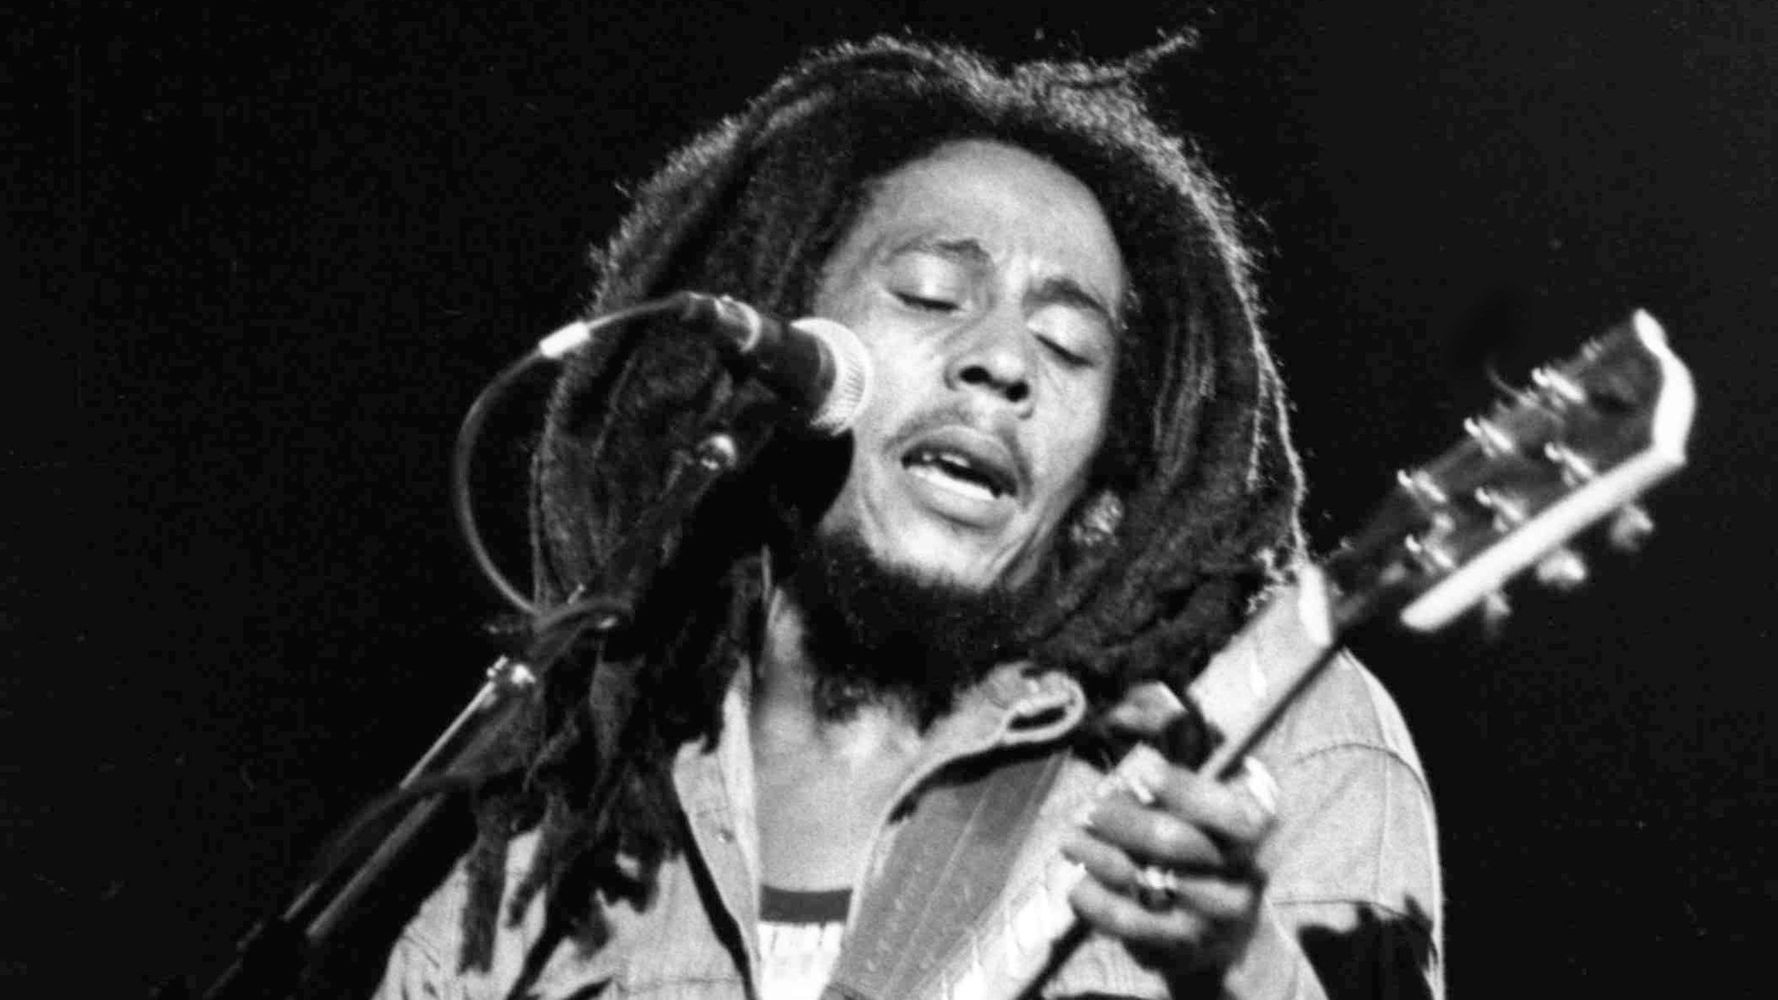 Fans Celebrate Legend Bob Marley On What Would Have Been His